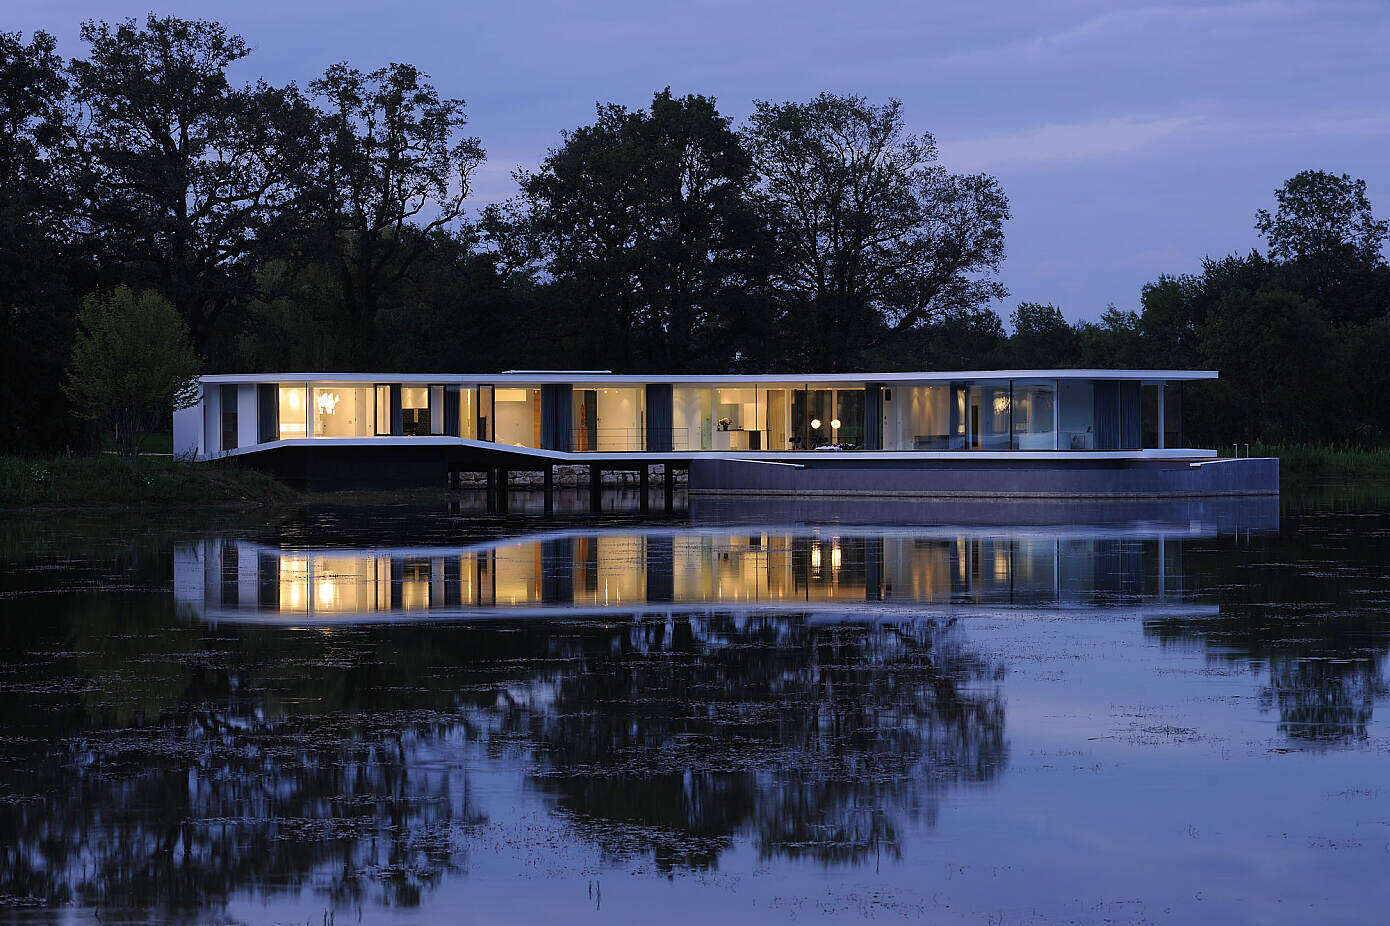 White Snake House by Aum Pierre Minassian